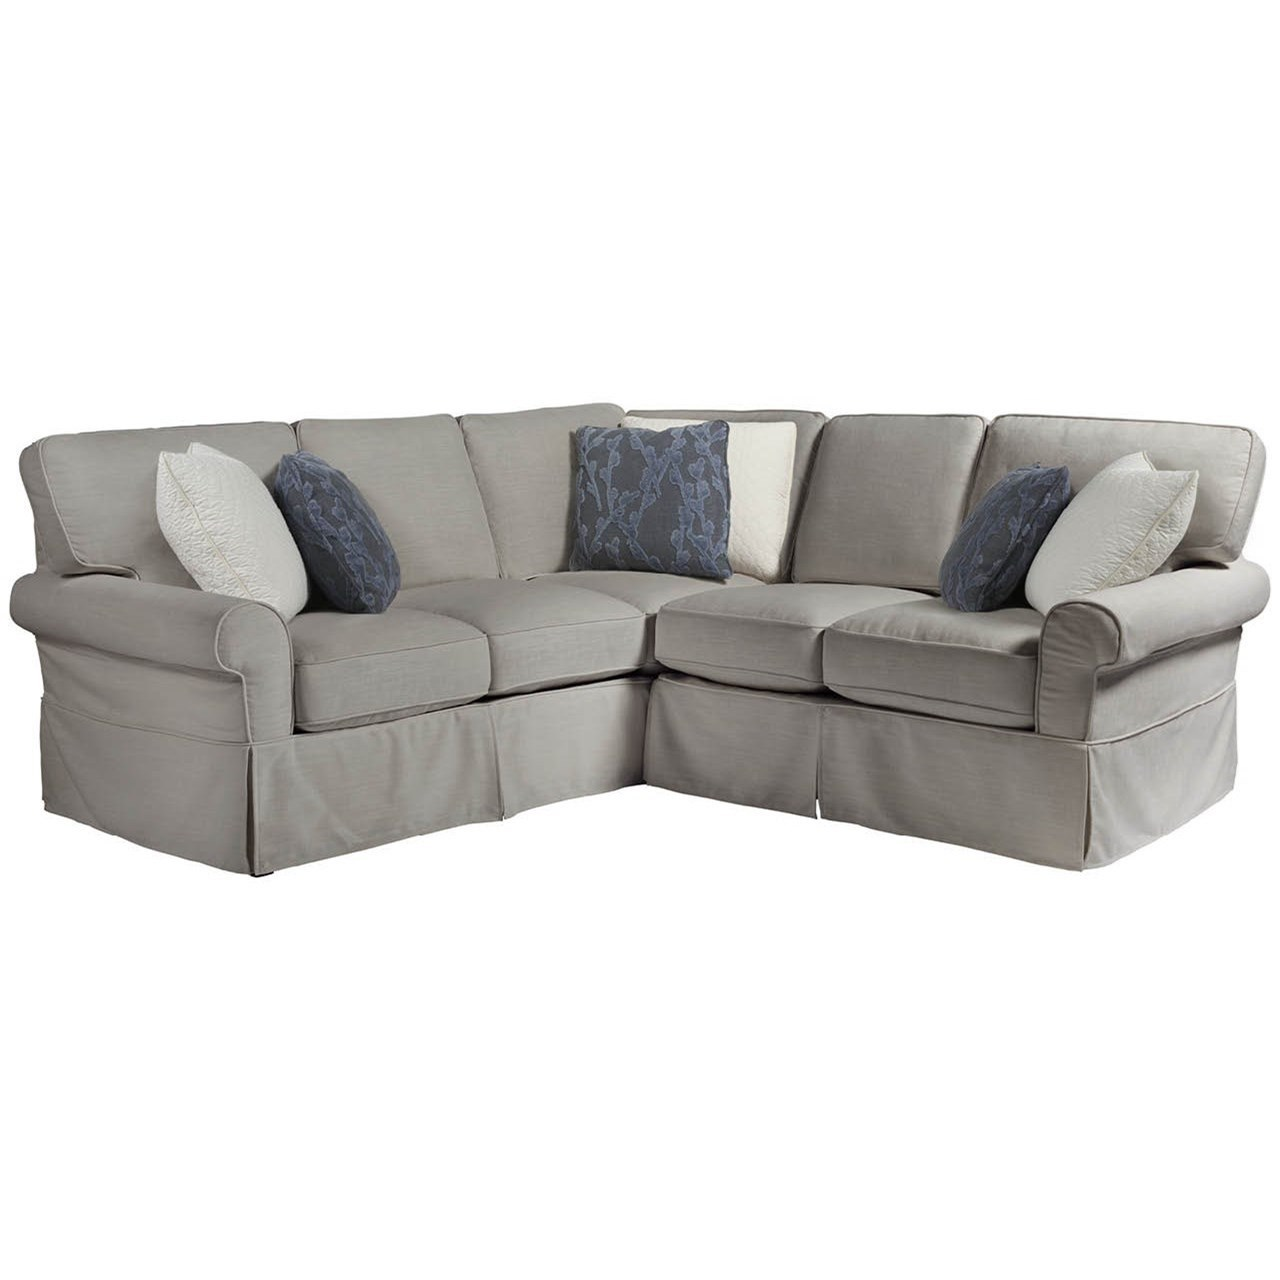 Coastal Living Home - Escape Ventura Left Arm Loveseat Sectional by Universal at Baer's Furniture